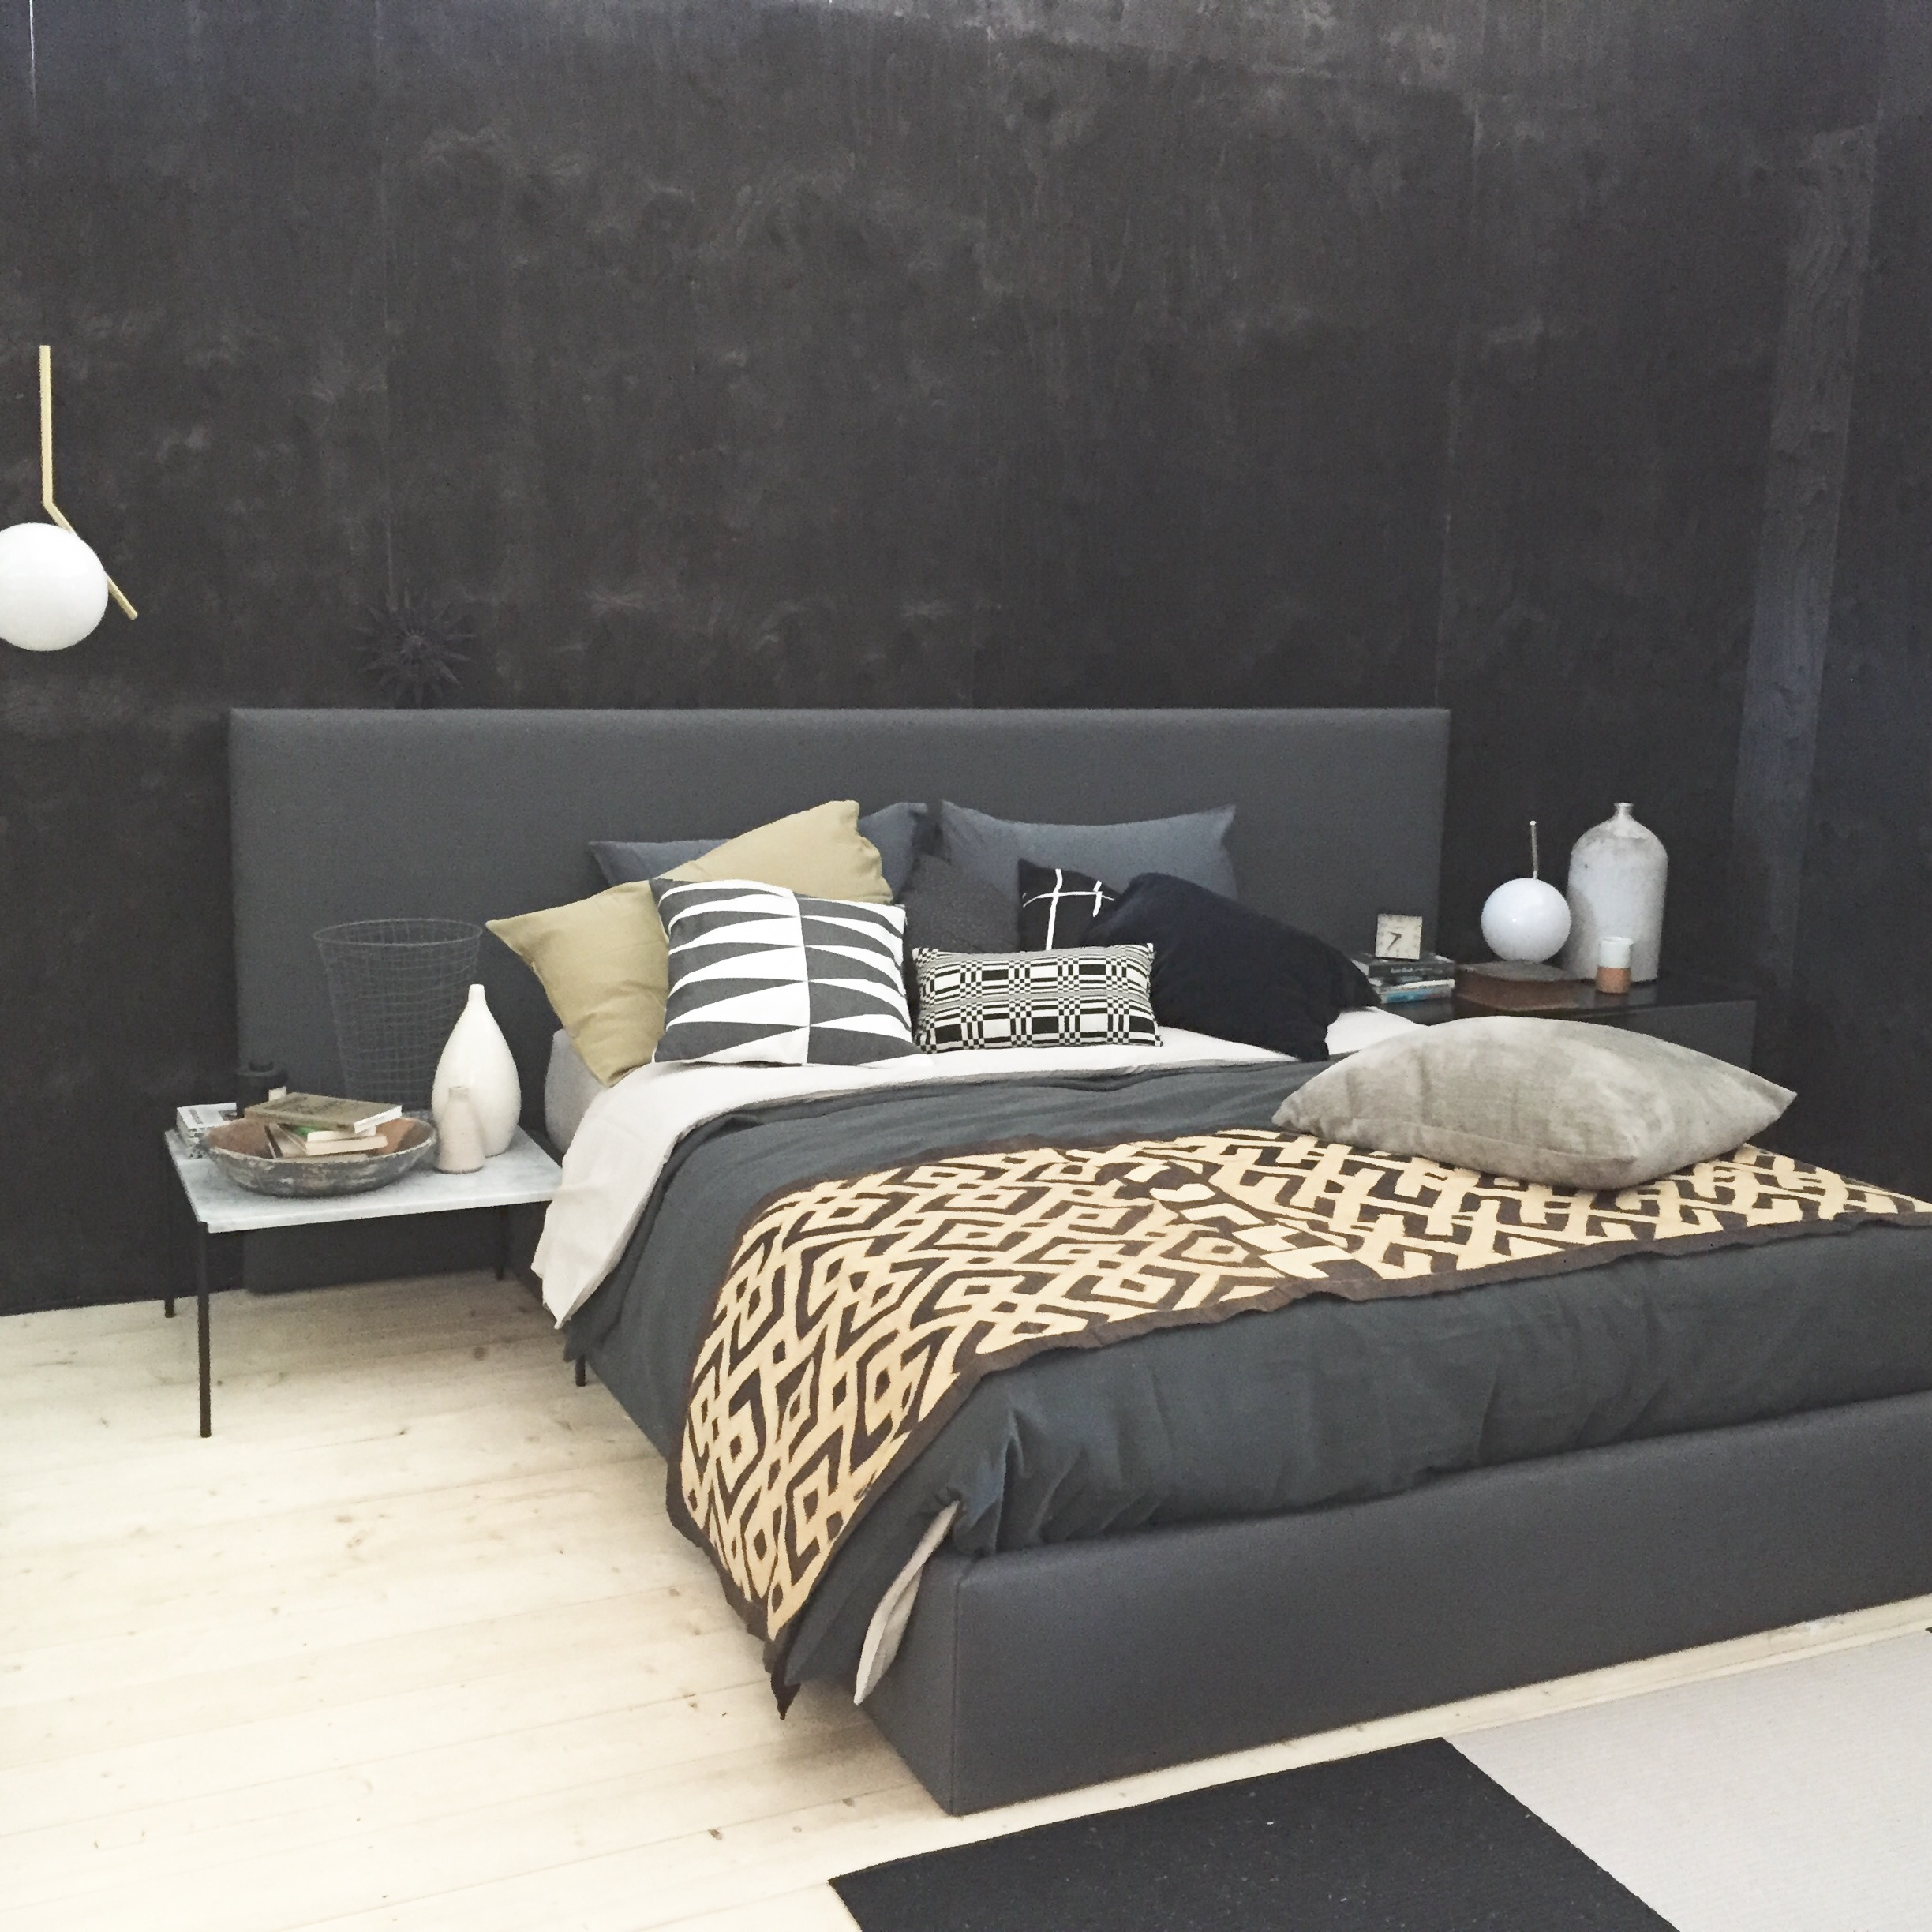 47010 Woodnotes Bed and 47001C Bed headboard graphite